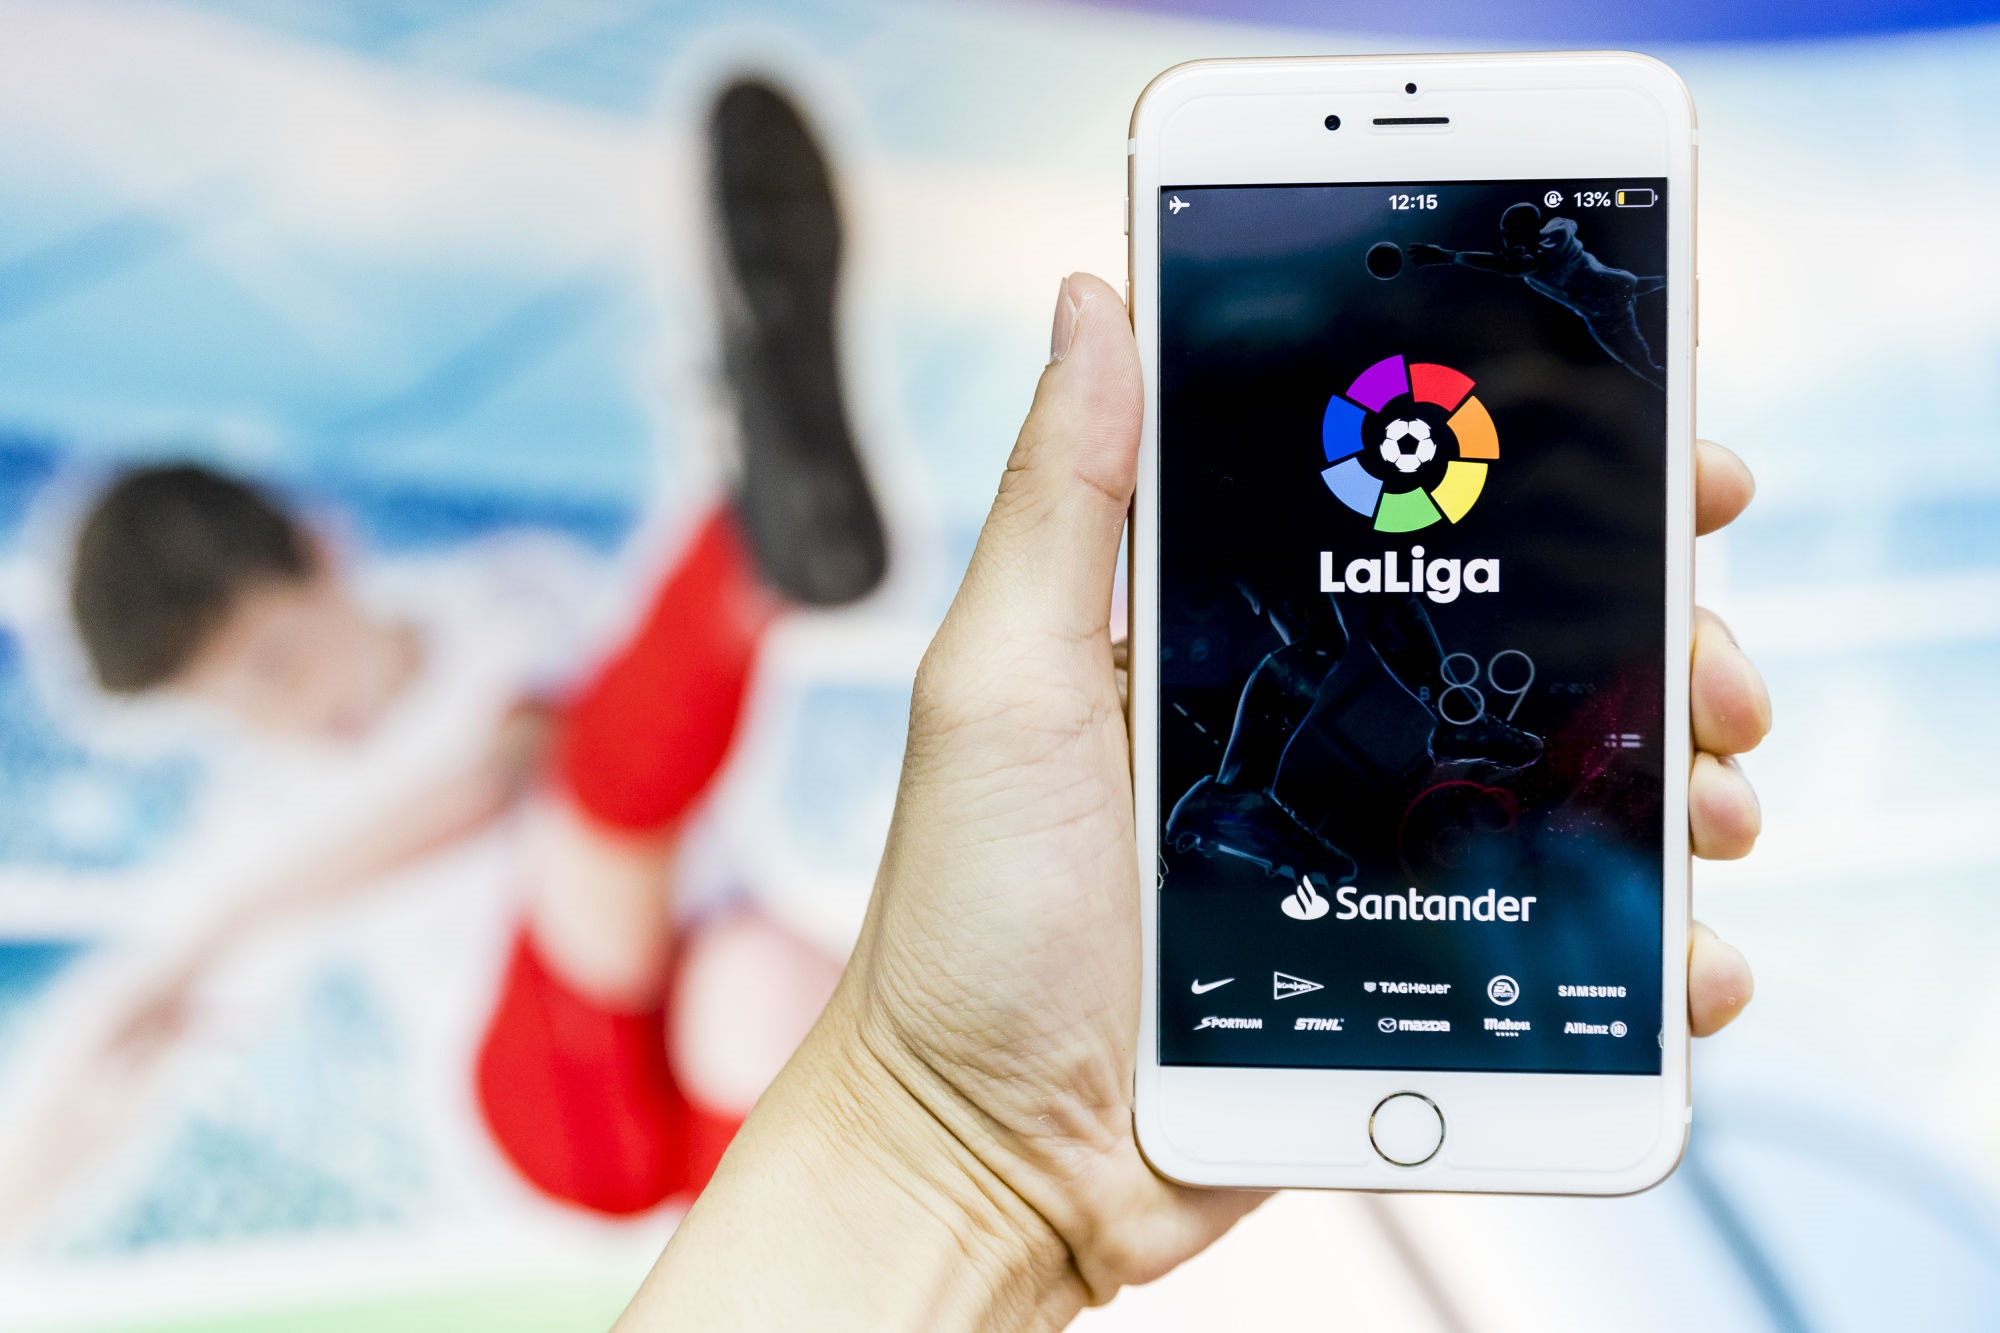 La Liga fined €250k for using its app to catch illegal soccer streams | DeviceDaily.com